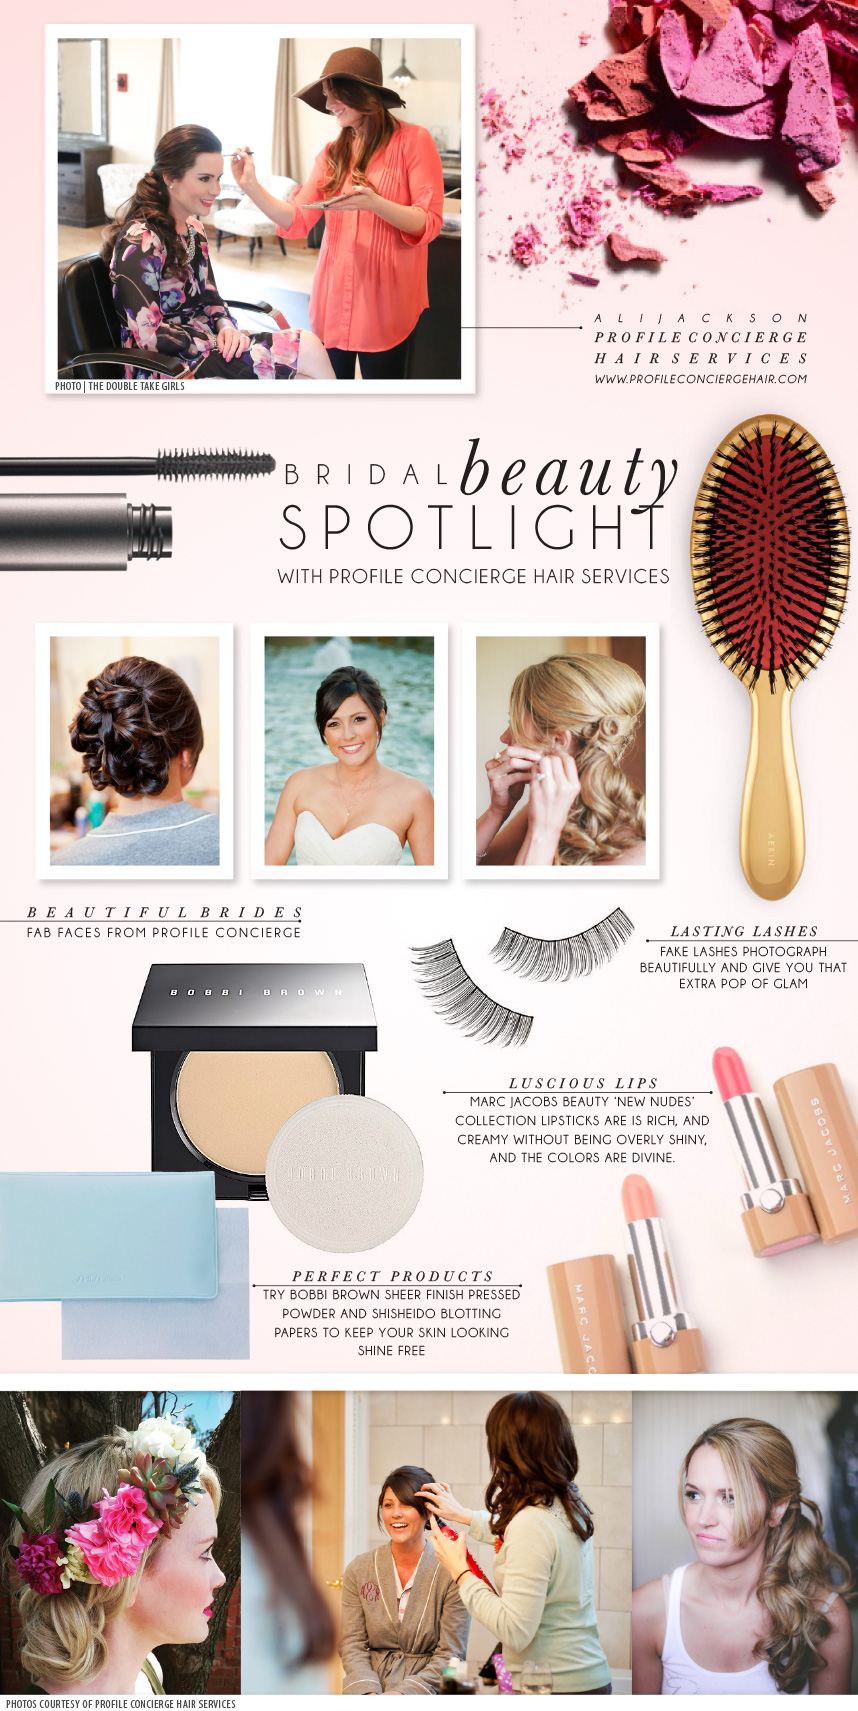 profileconcierge_beautyspotlight_blog